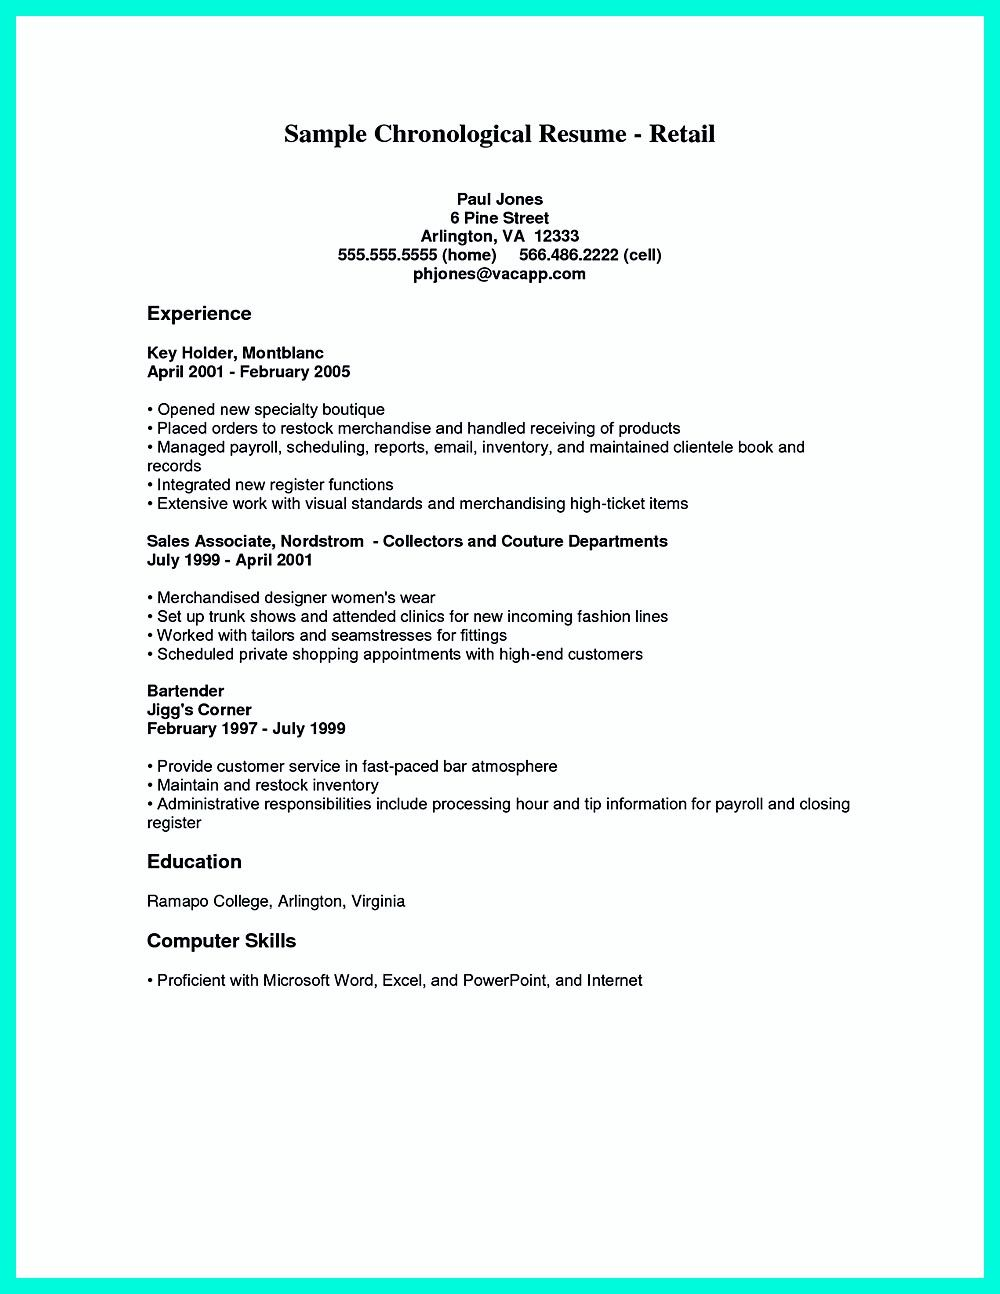 Chronological Resume Is Needed By People In Making Them Understand How To Write Good Resume In Good Order It Is The Most Commonly Applied Format Of R Check